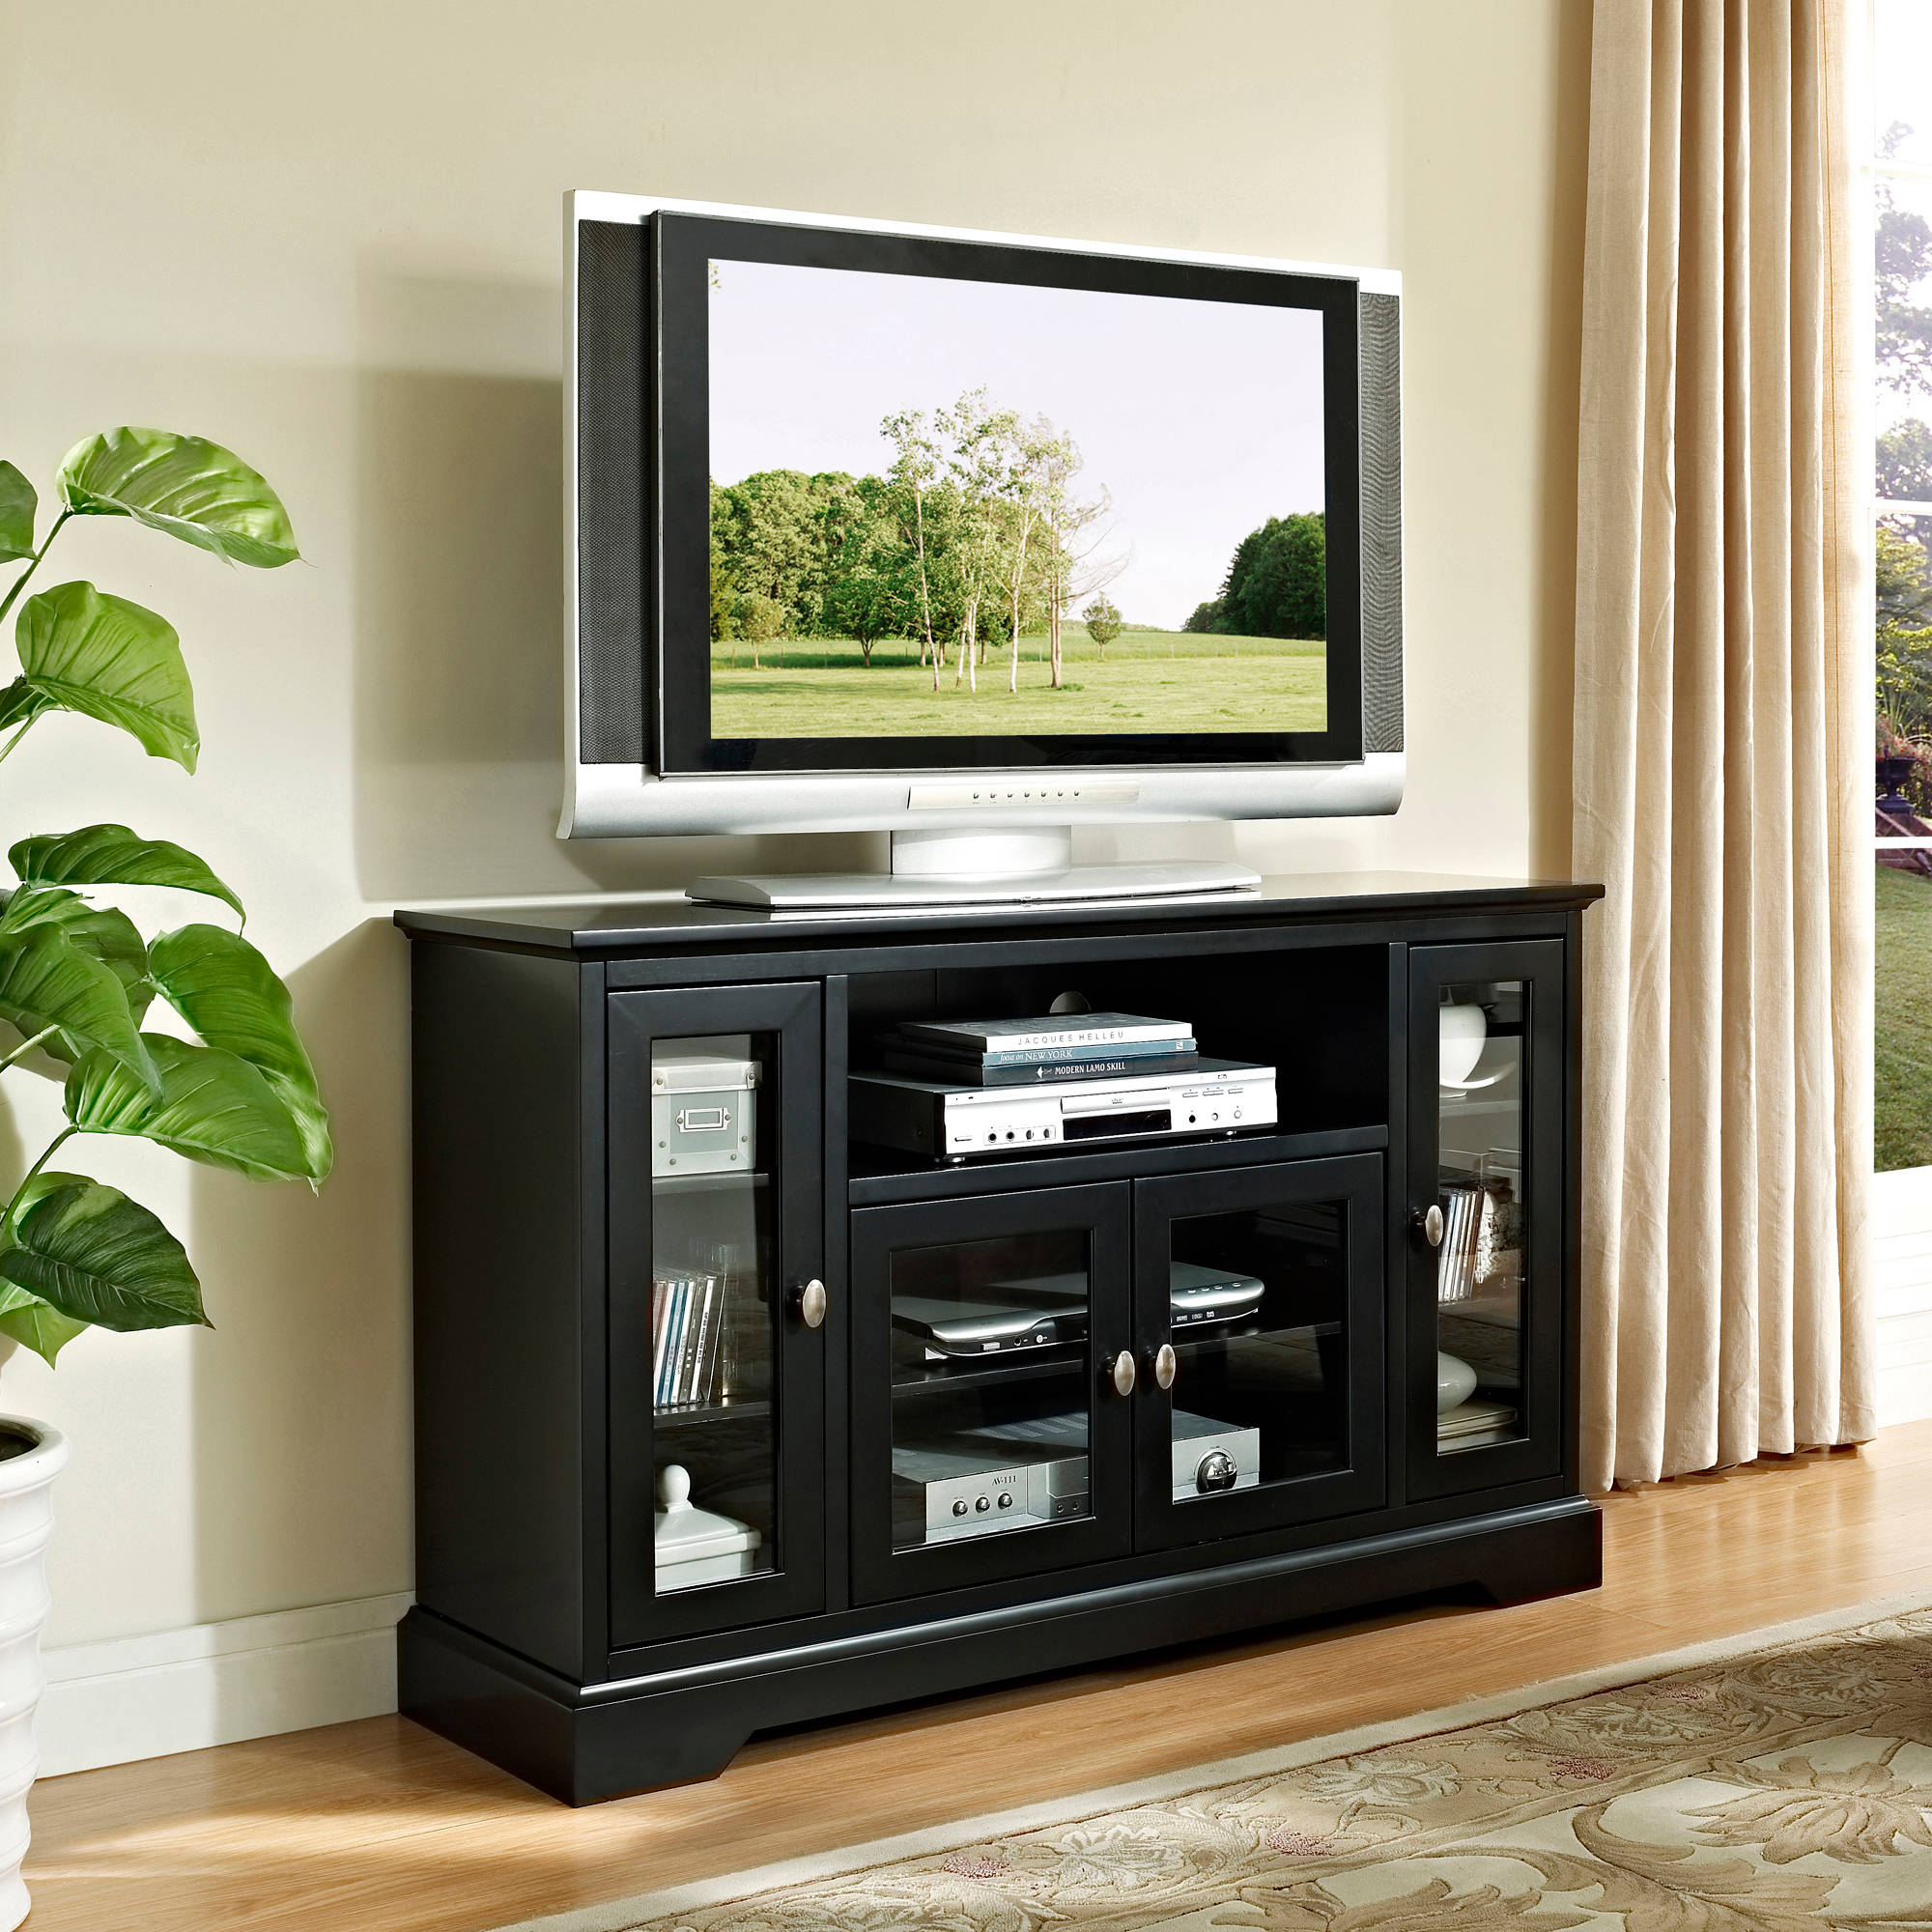 "Walker Edison Highboy-Style Wood Media Storage TV Stand Console for TVs up to 55"", Multiple Finishes"